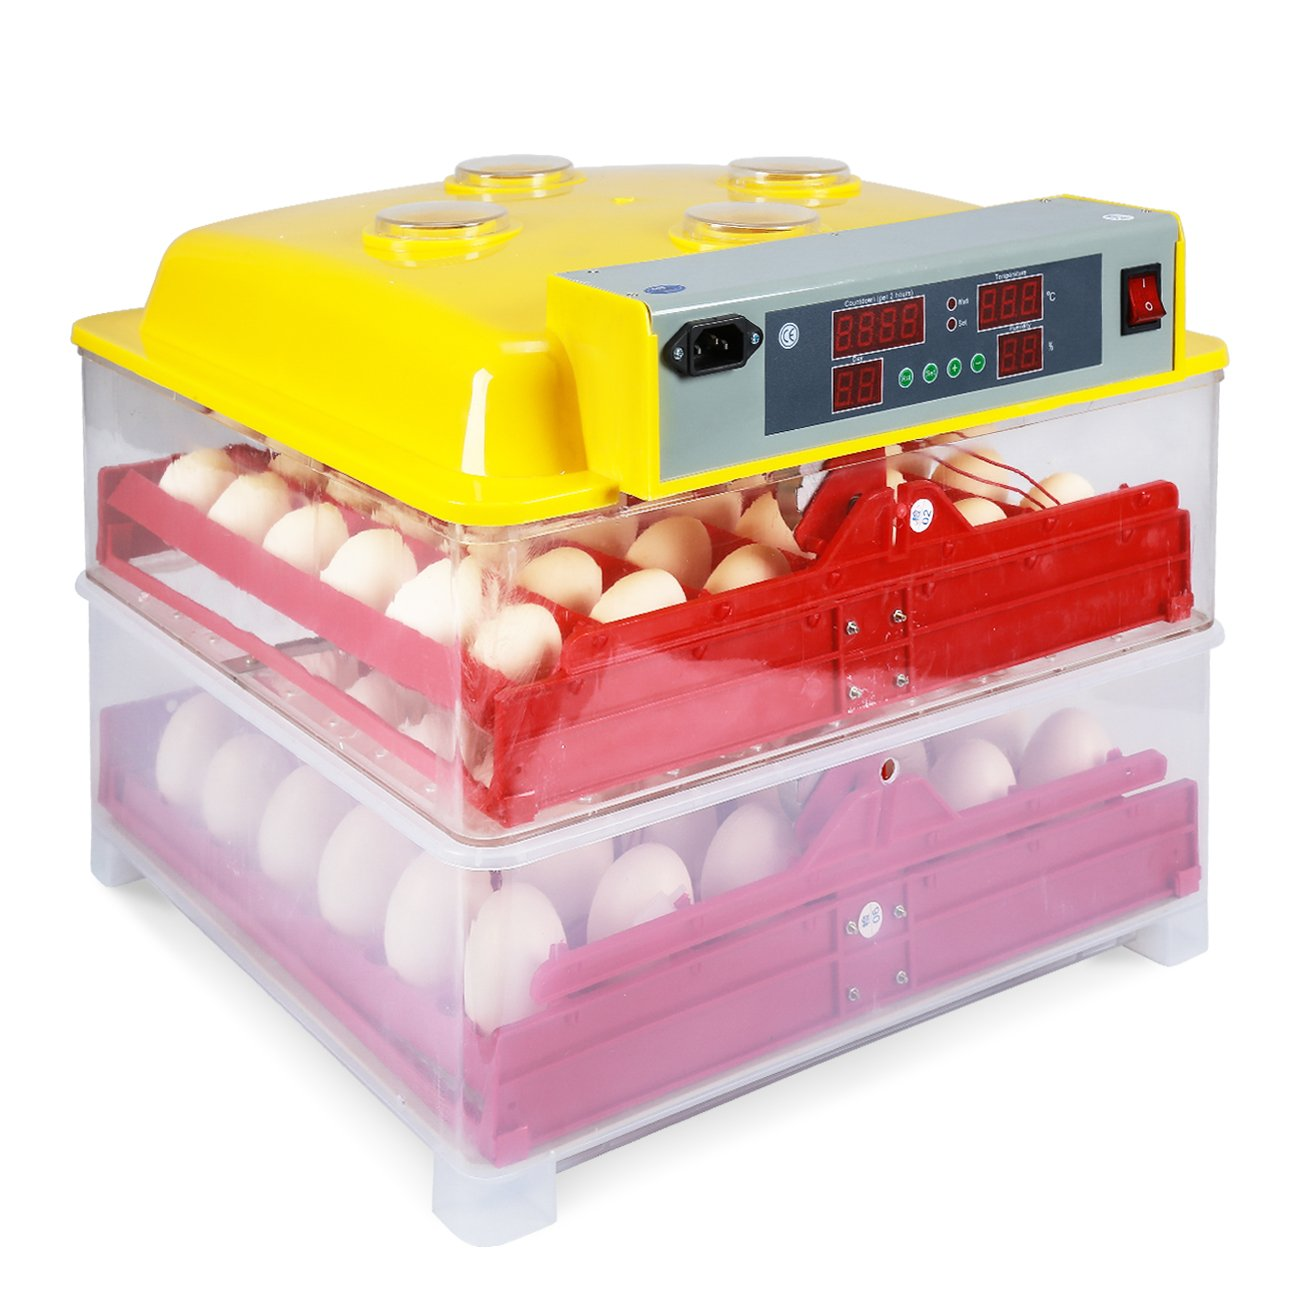 ARKSEN 288 Quail Egg Incubator | Poultry Hatcher | Auto Turner | Digital Controls | Water Channels | 72 Chicken Eggs by ARKSEN (Image #2)